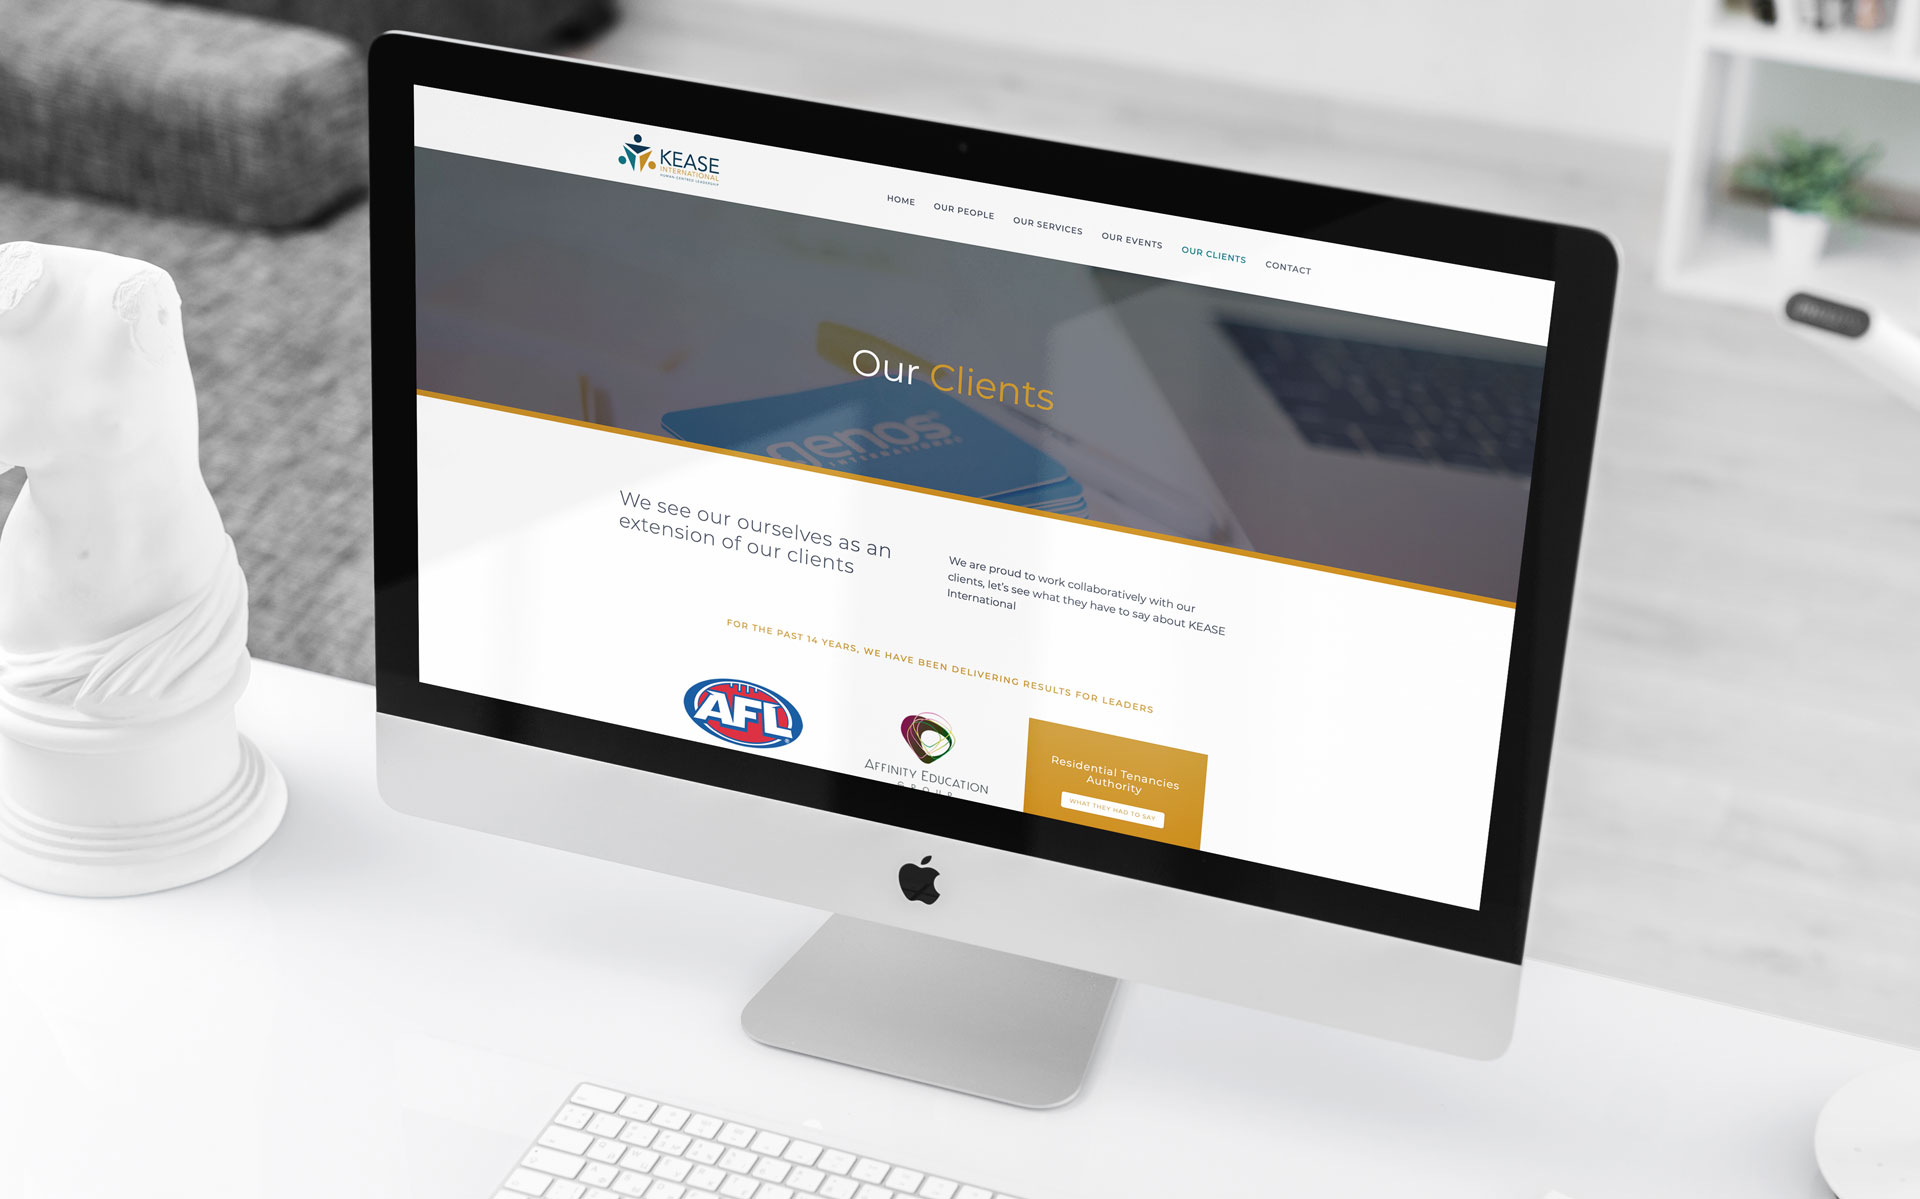 KEASE International website design & build by Amy at Yellow Sunday